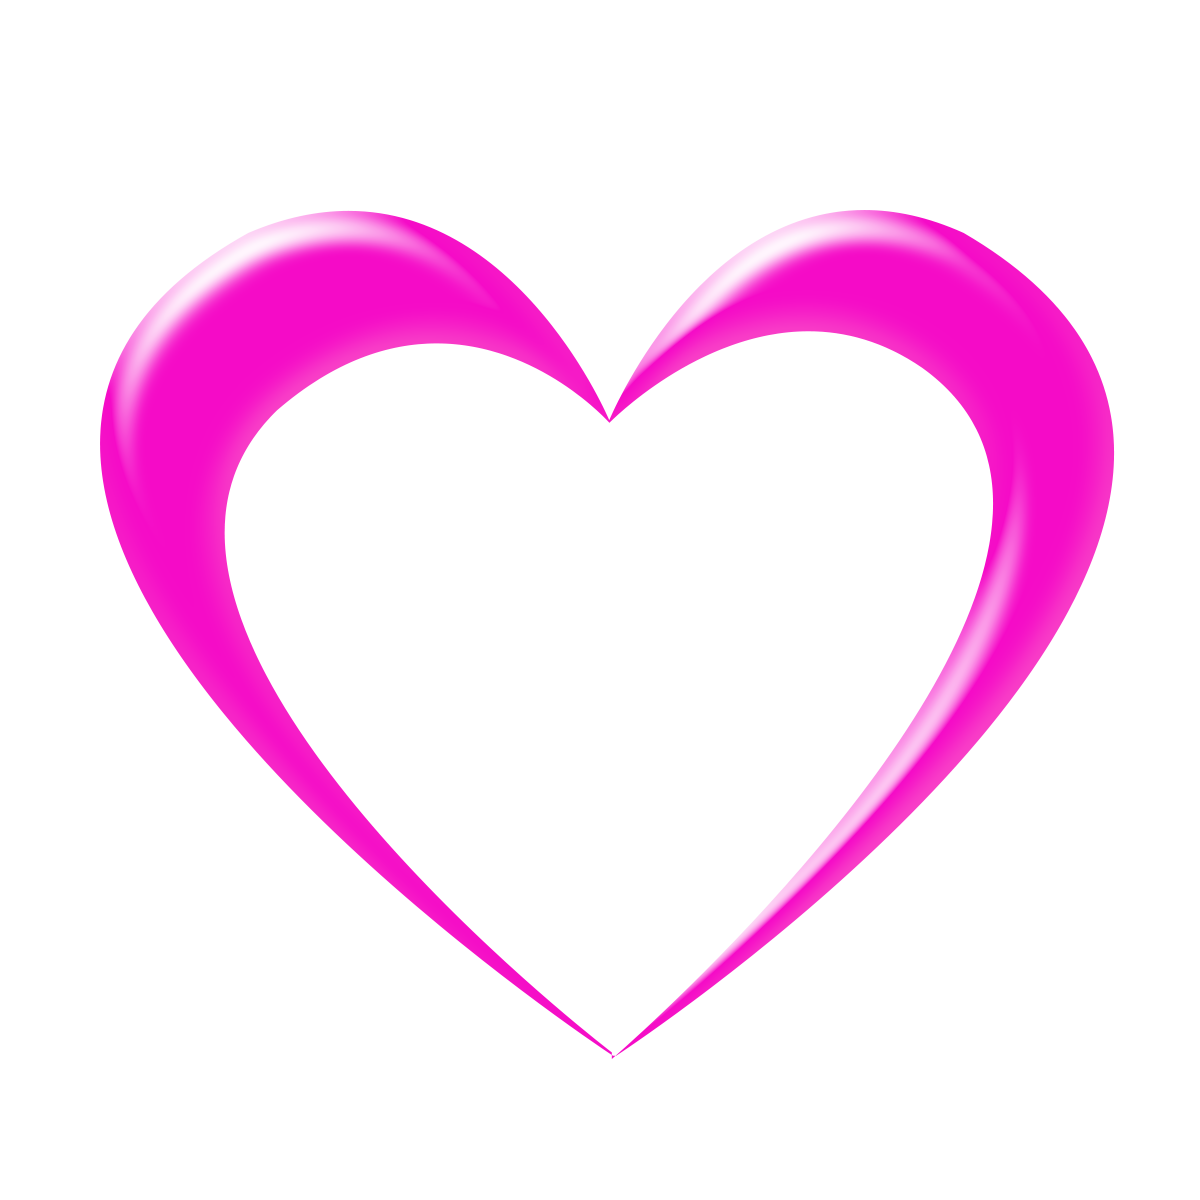 Free Download High Quality Heart Clipart Png Transparent Background Heart Line Art Png Its A Good Line Art Heart Clip Art Transparent Background Heart Images